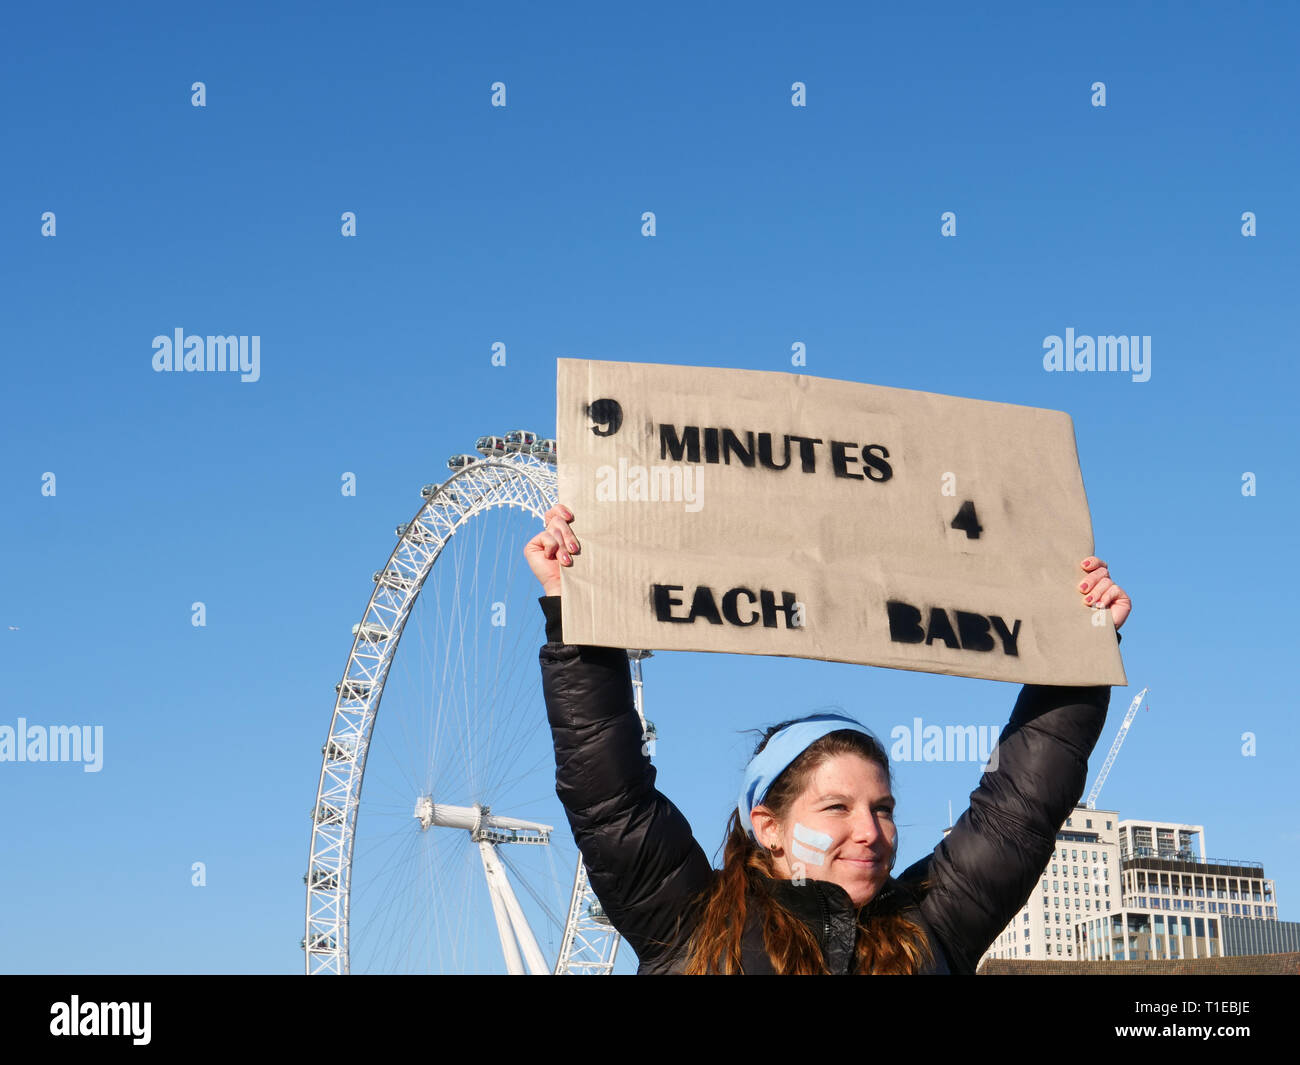 London, UK. 25th March, 2019. A group of young people, on a March for Life, demonstrate on Parliament Square, London, UK and walk to Westminster Bridge for a 9 minutes protest to highlight that since David Steel's Abortion Act 1967, 9 million abortions have been performed in the UK. Credit: Joe Kuis / Alamy Live News Stock Photo